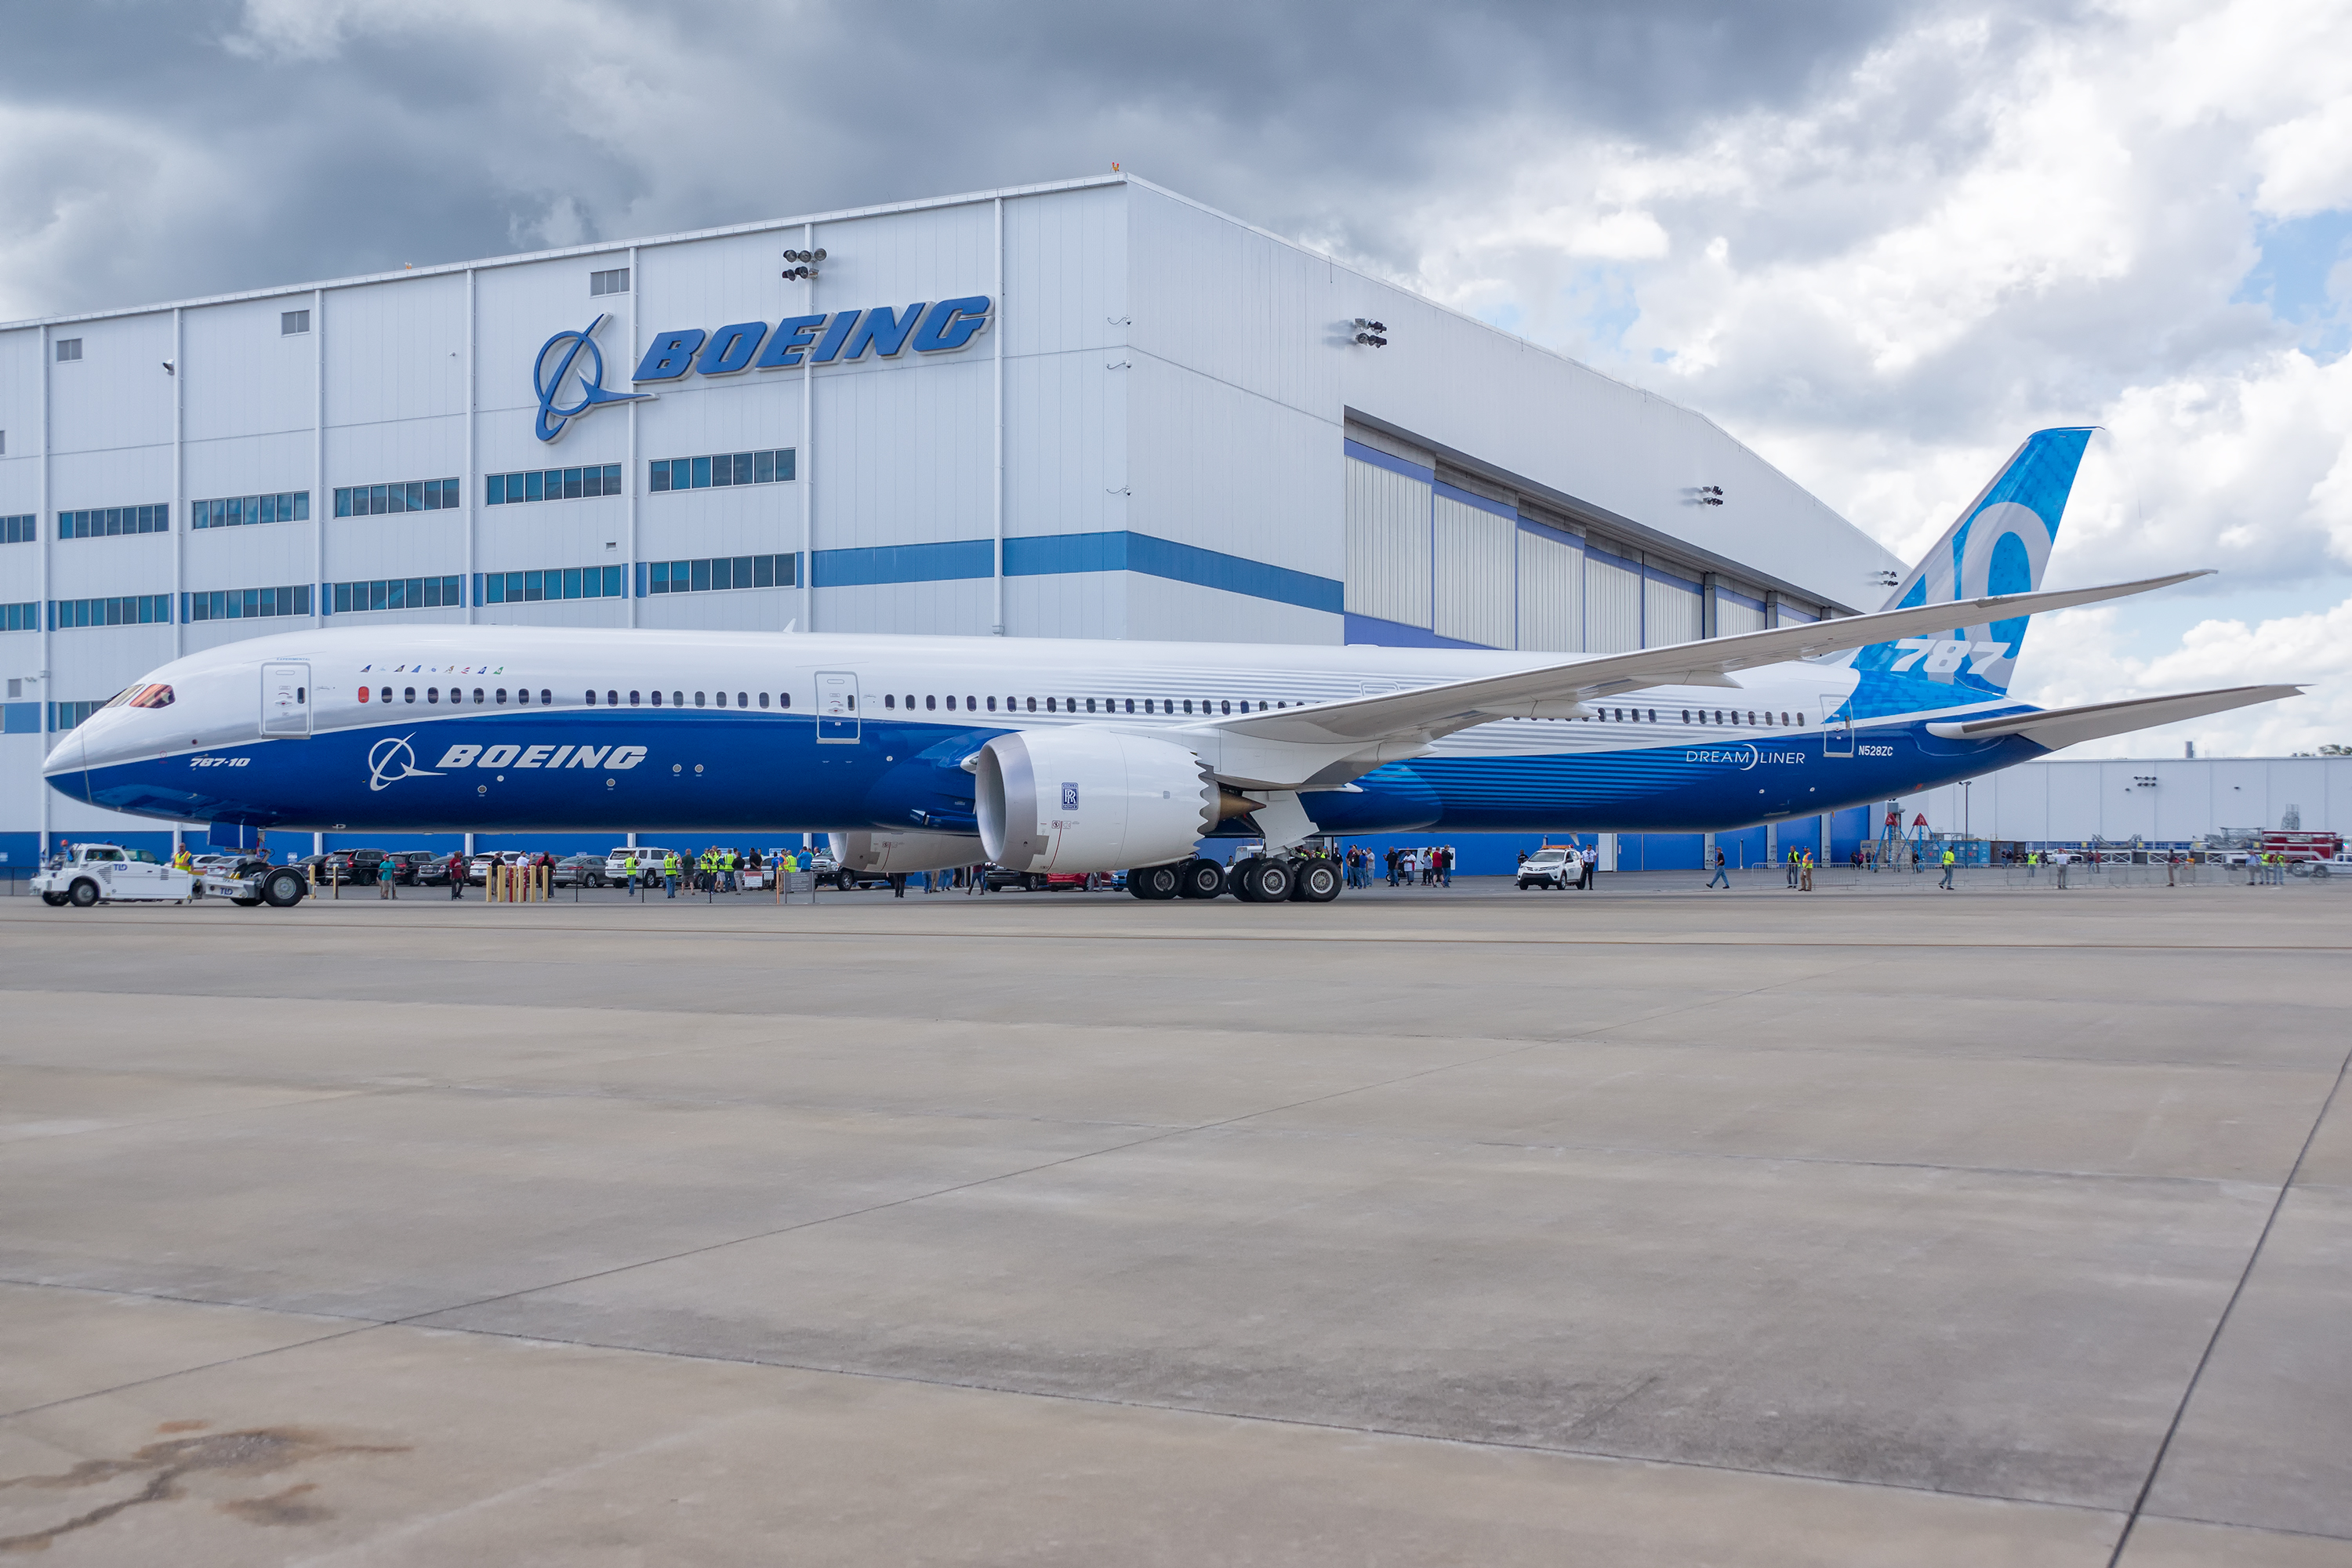 Acdata 7674 en moreover Boeing Reveals Air Force T X  petitor besides toppersandmore in addition A 10 Thunderbolt Ii The Ultimate Tank Buster further Photos The Boeing 787 10  pletes Maiden Flight In North Charleston S C. on general electric service